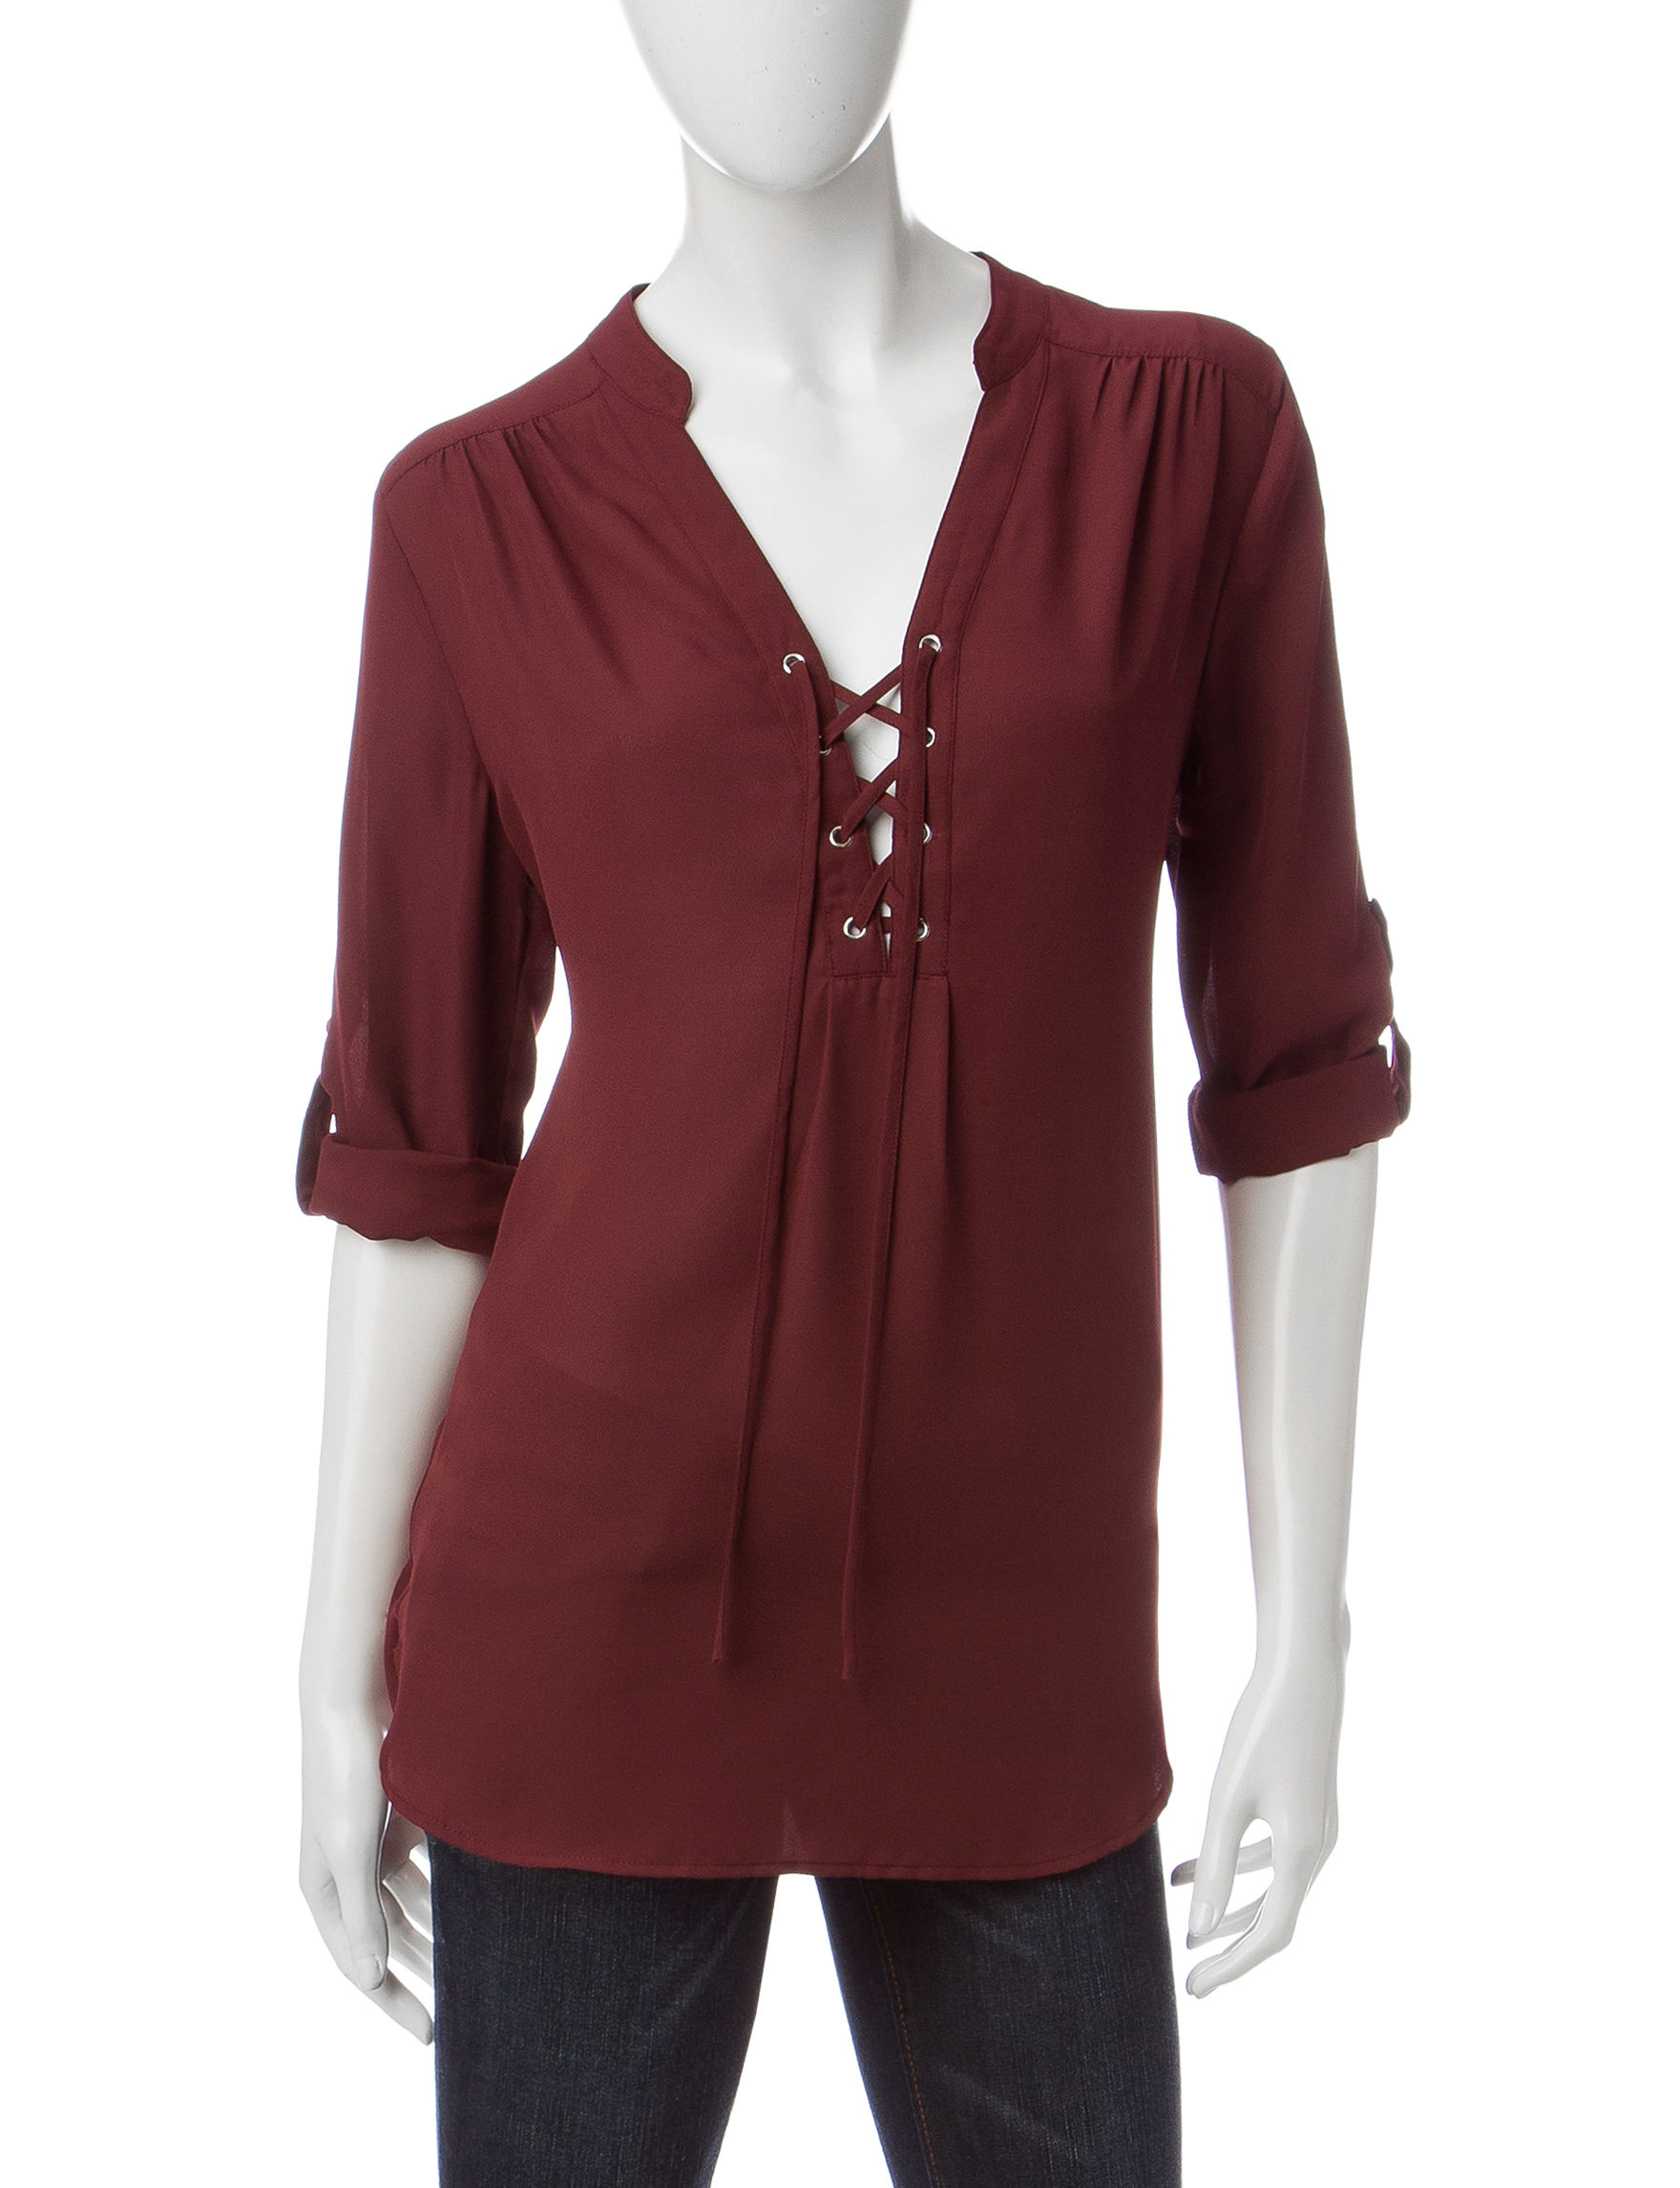 Wishful Park Burgundy Pull-overs Shirts & Blouses